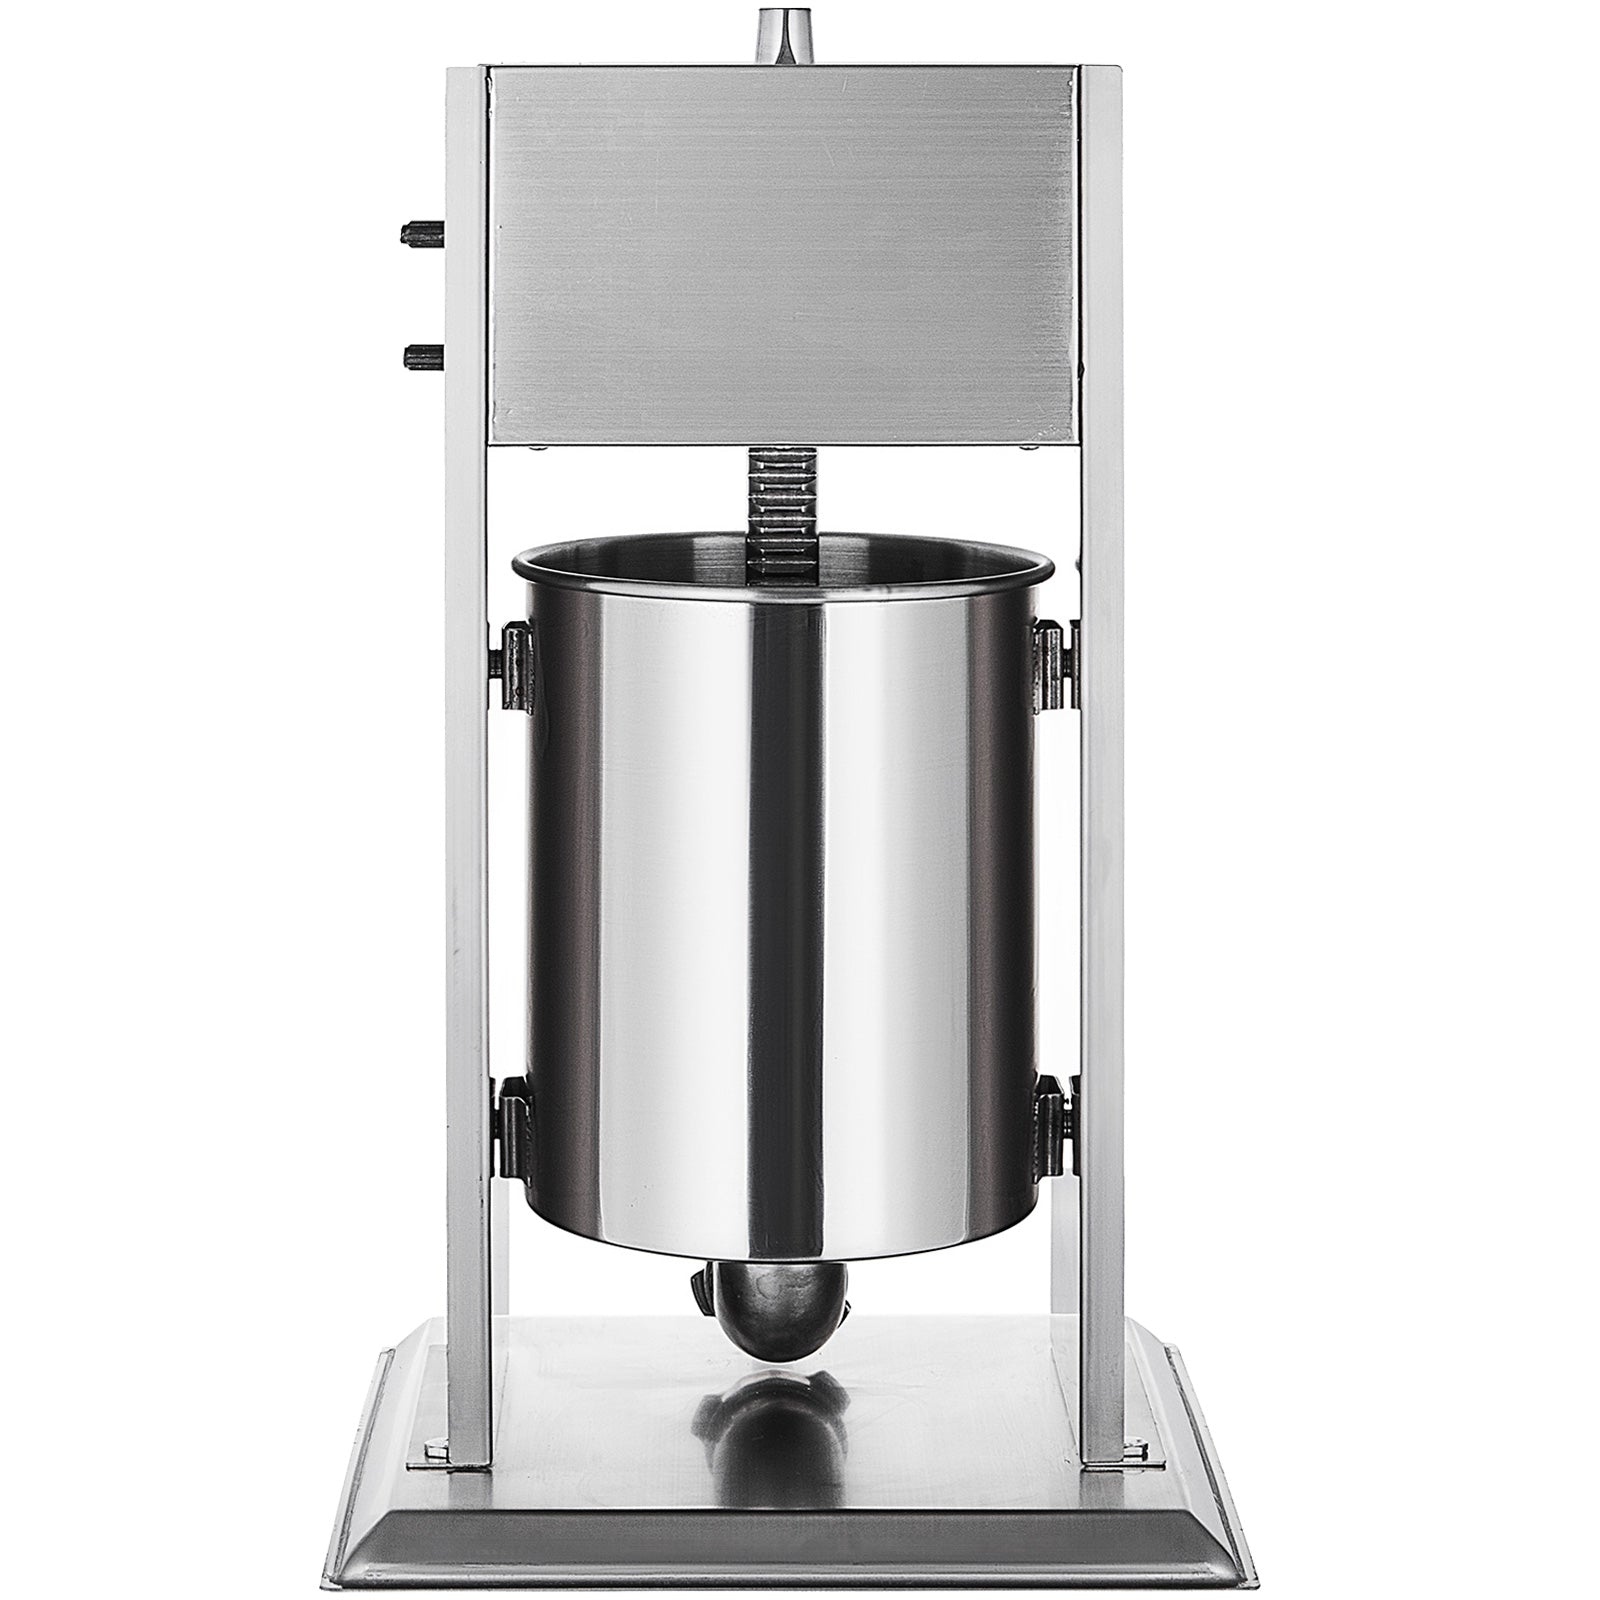 10l Sausage Stuffer Meat Maker Machine With 5 Nozzles Vertical Stainless Steel